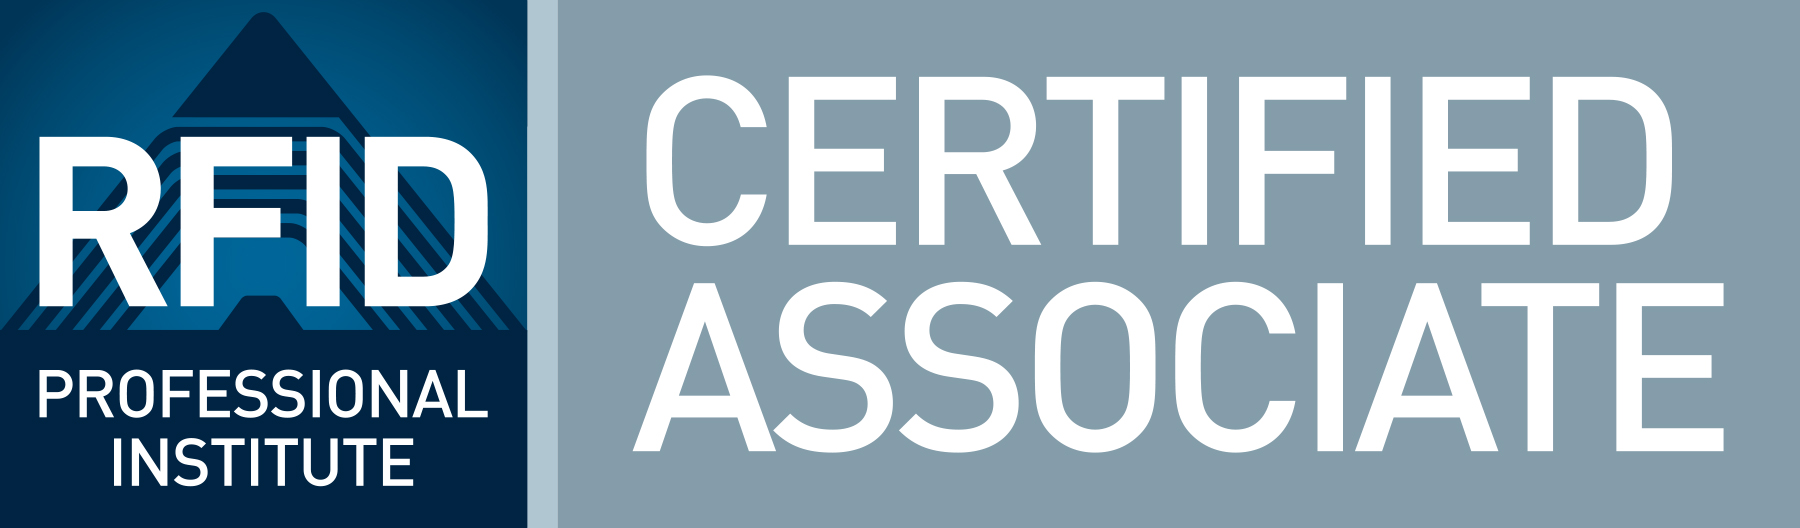 RFID Professional Institute Associate Certified